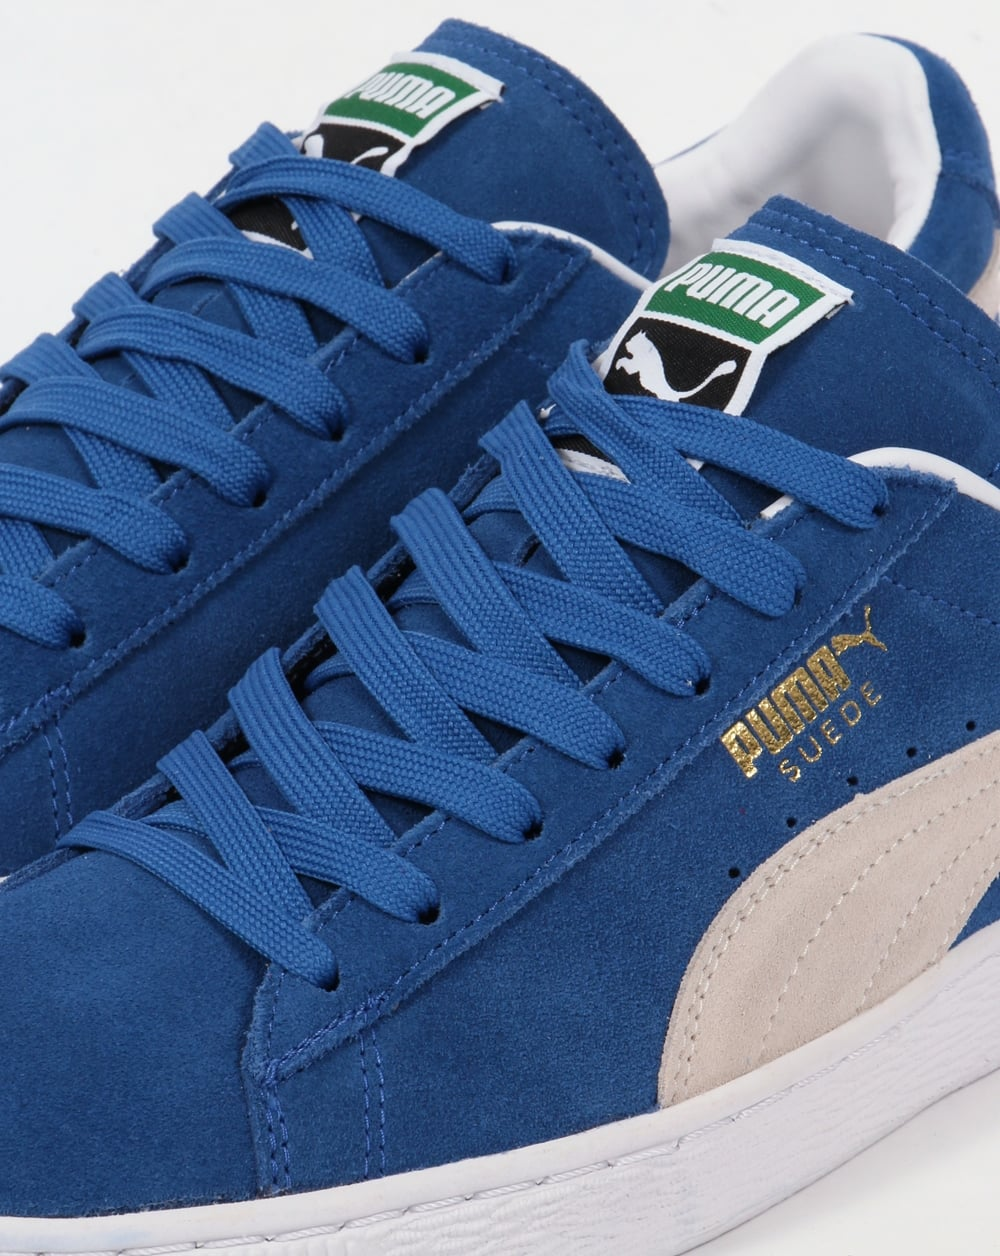 wholesale dealer 396e4 ac1d7 Puma Suede Classic Trainers Olympia Blue/White